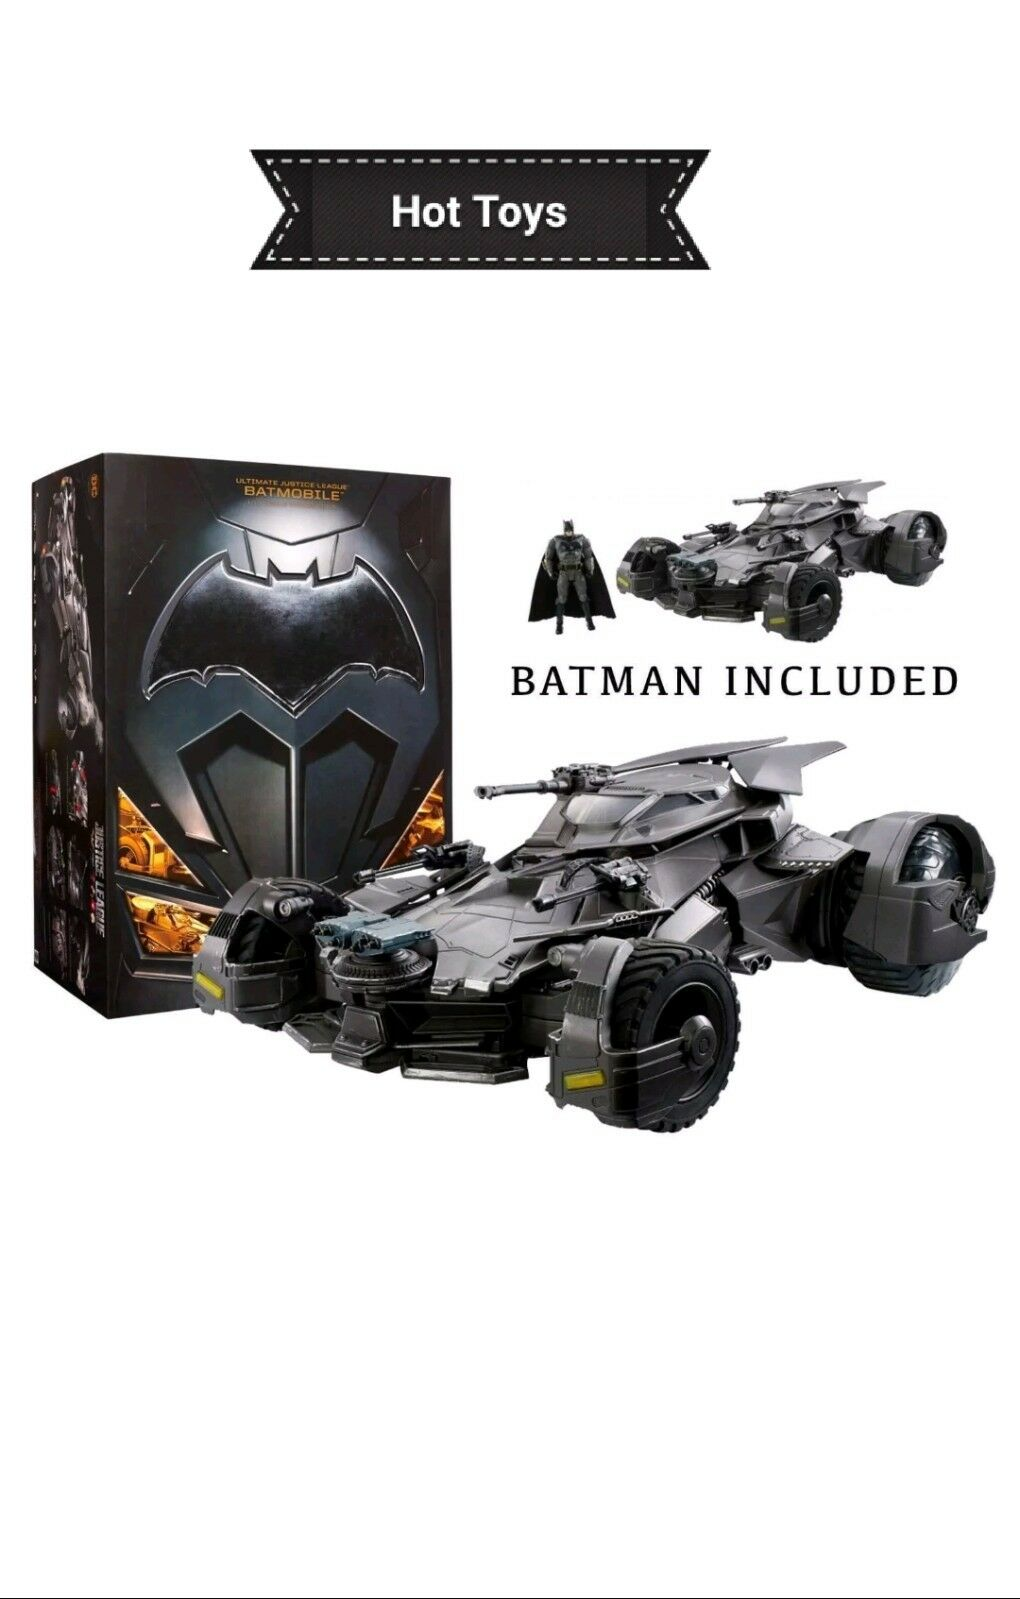 Justice League Ultimate Batmobile RC Vehicle & Figure HUGE 1 10 SCALE Batman DC